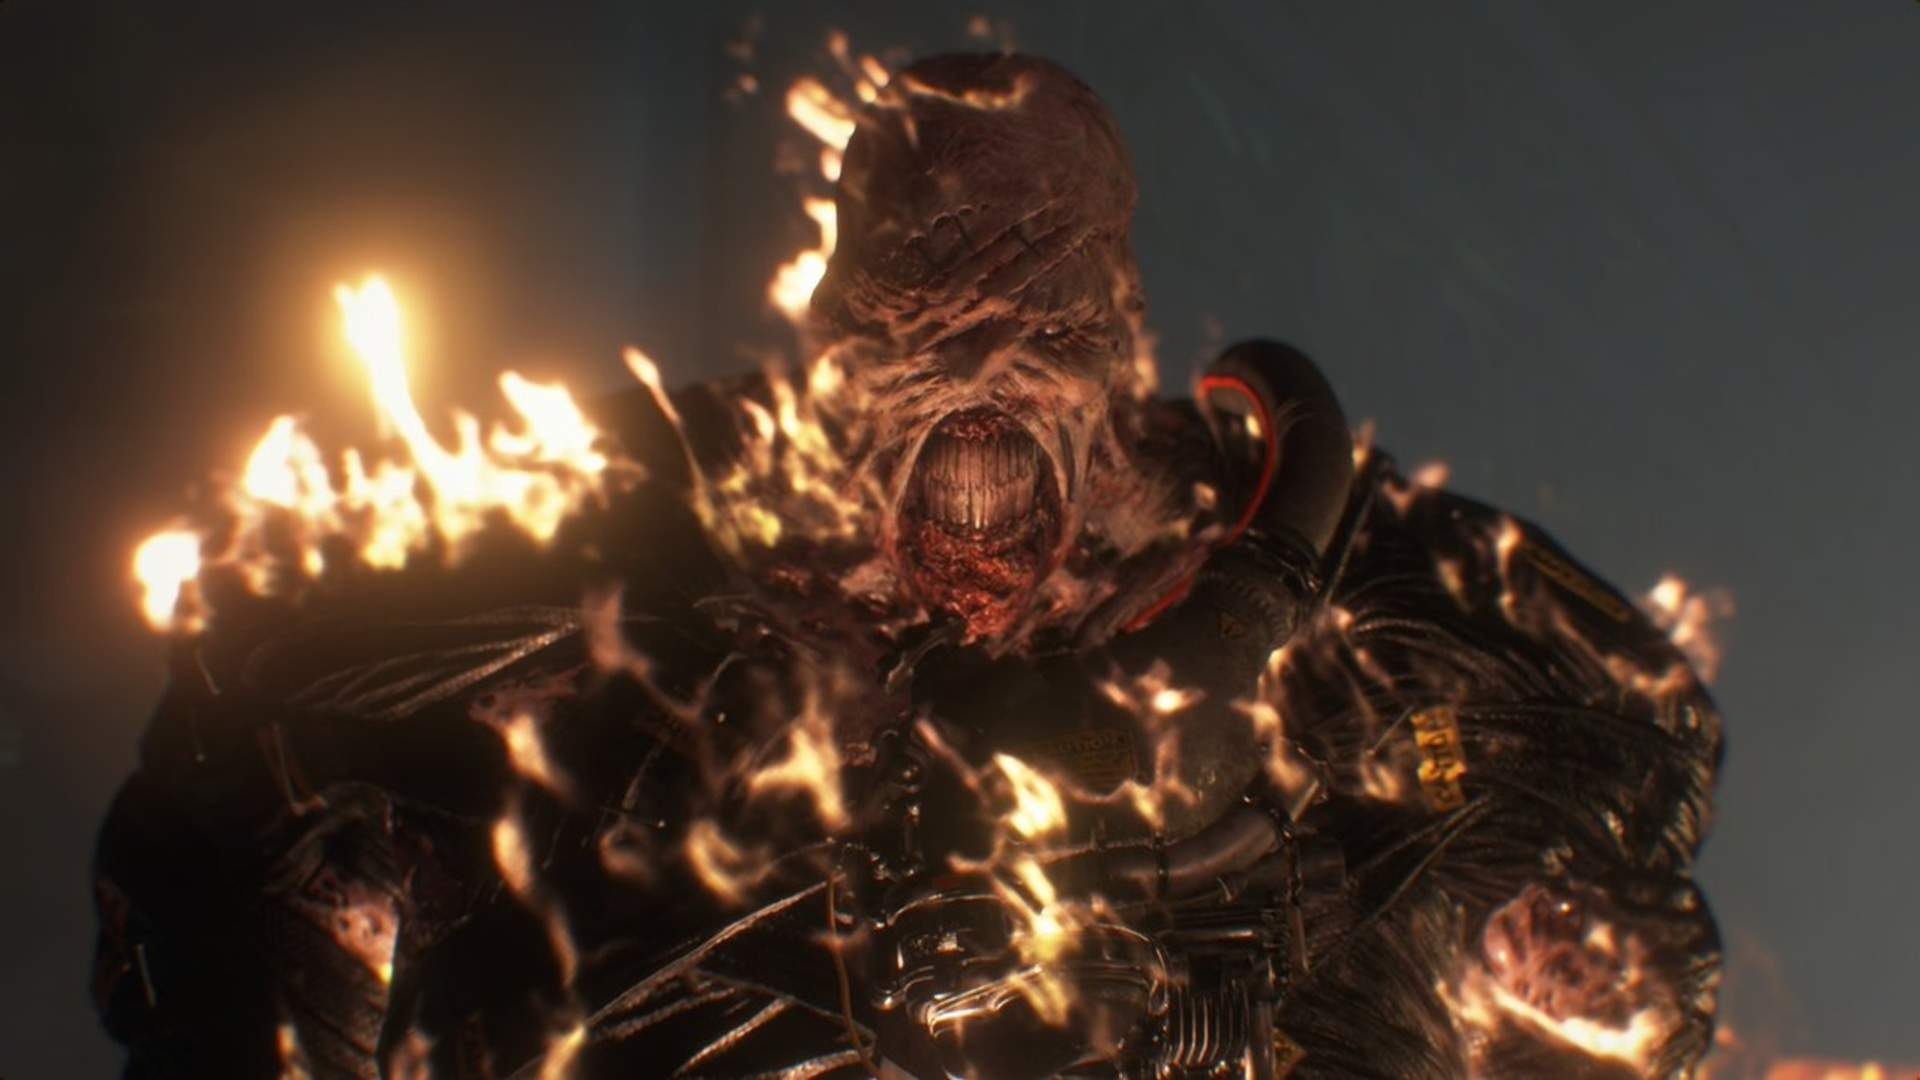 Resident Evil Three Remake's Nemesis Wears a Masks, Resulting in Some Fascinating Theories